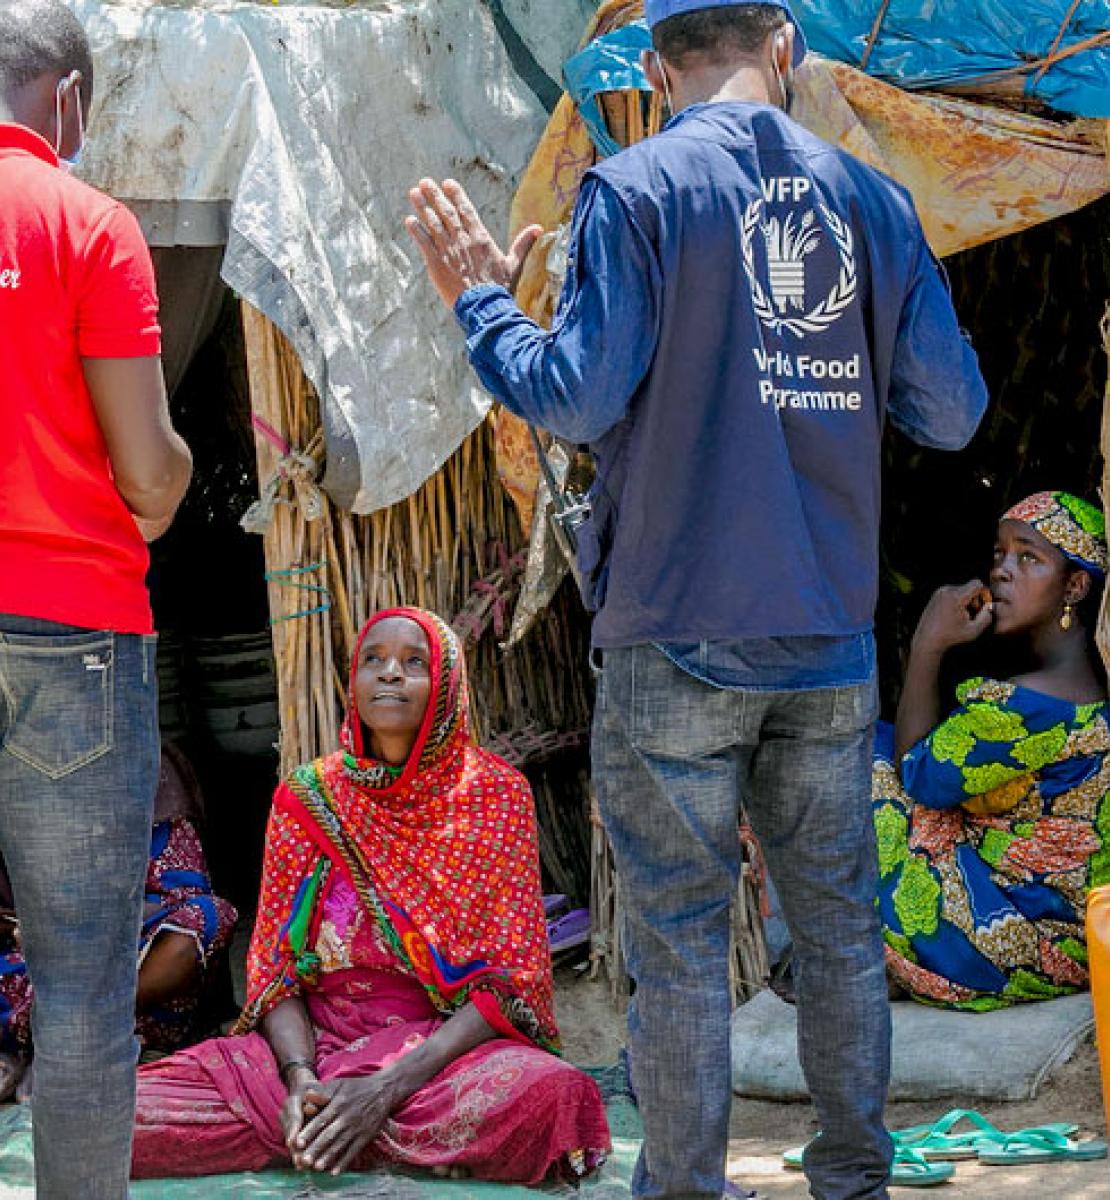 Pictured here, a WFP staff member interviews displaced persons at an informal IDP settlement in Maiduguri, Nigeria.